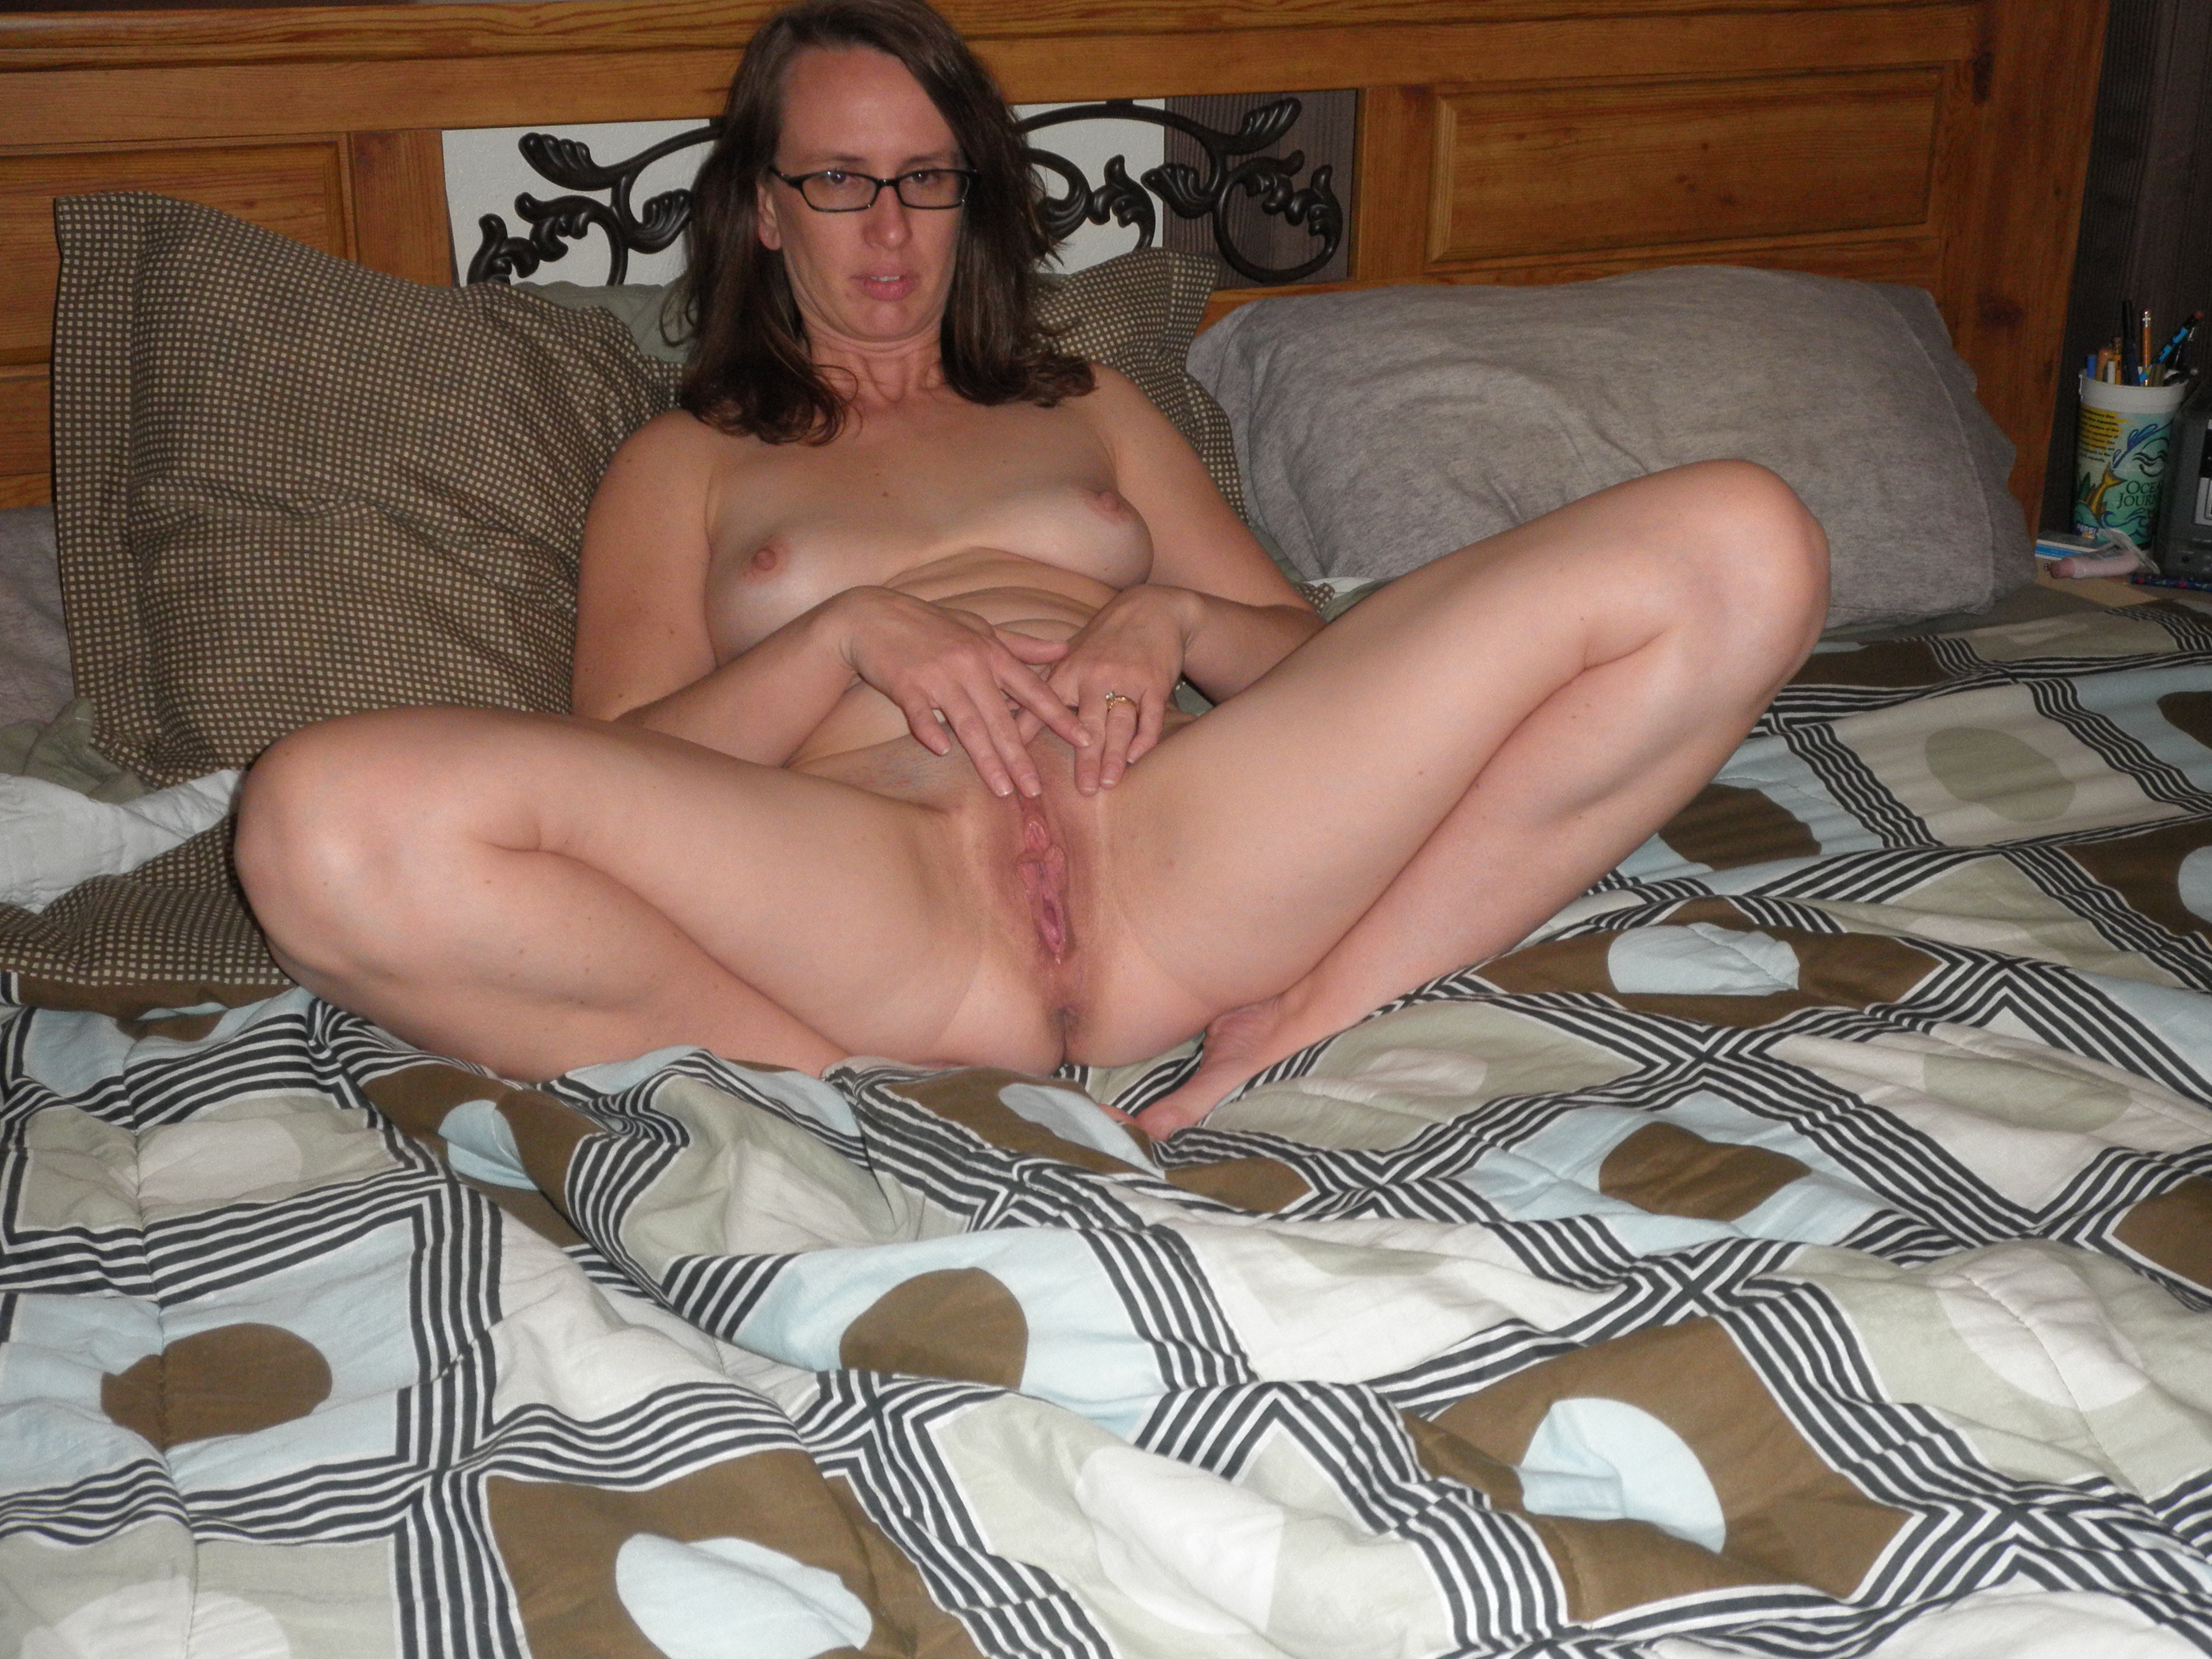 Have slut nude spread can recommend